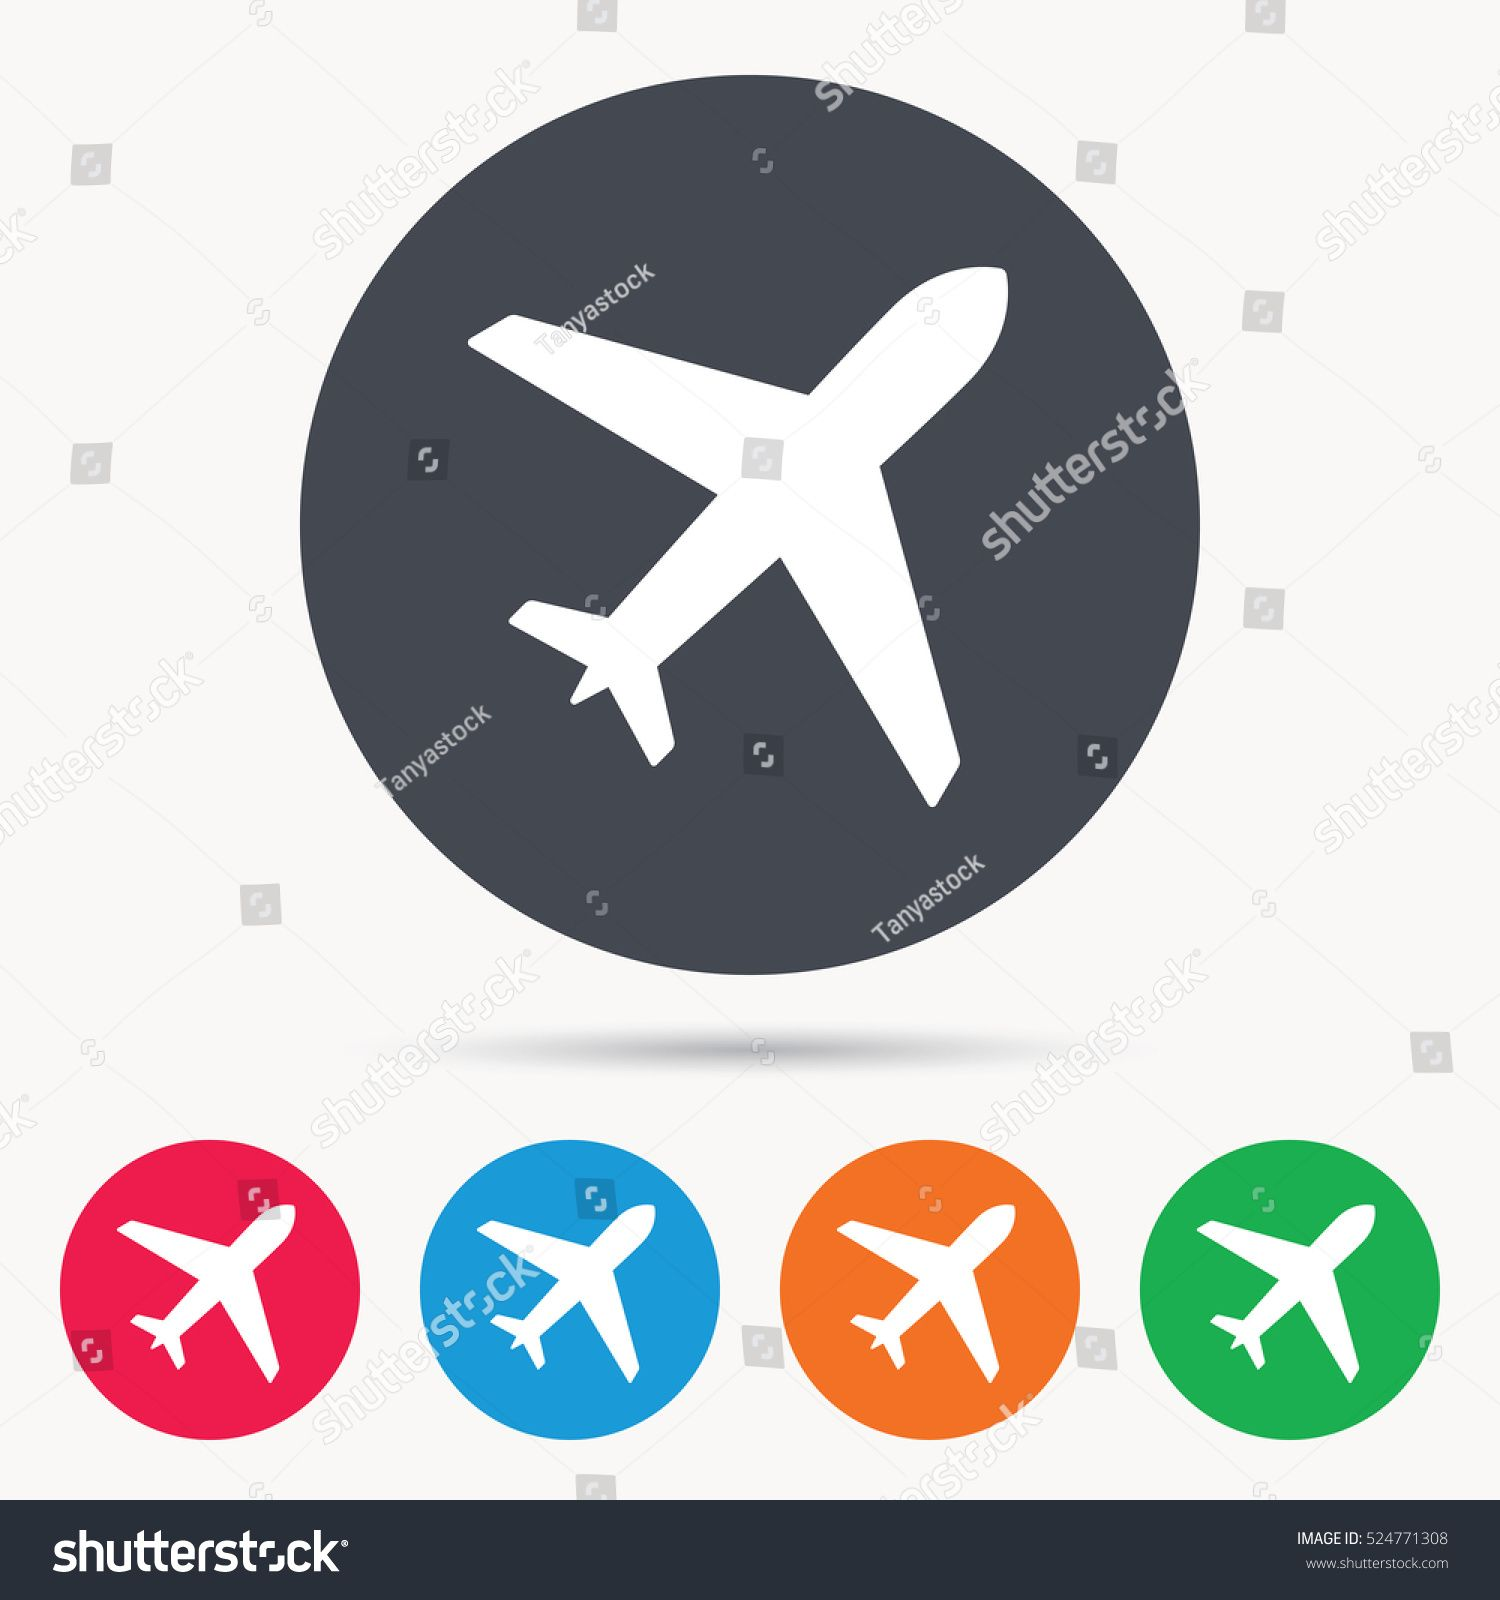 Plane Icon Flight Transport Symbol Colored Circle Buttons With Flat Web Icon Vector Transport Symbol Flight Plane Plane Icon Web Icons Flat Web